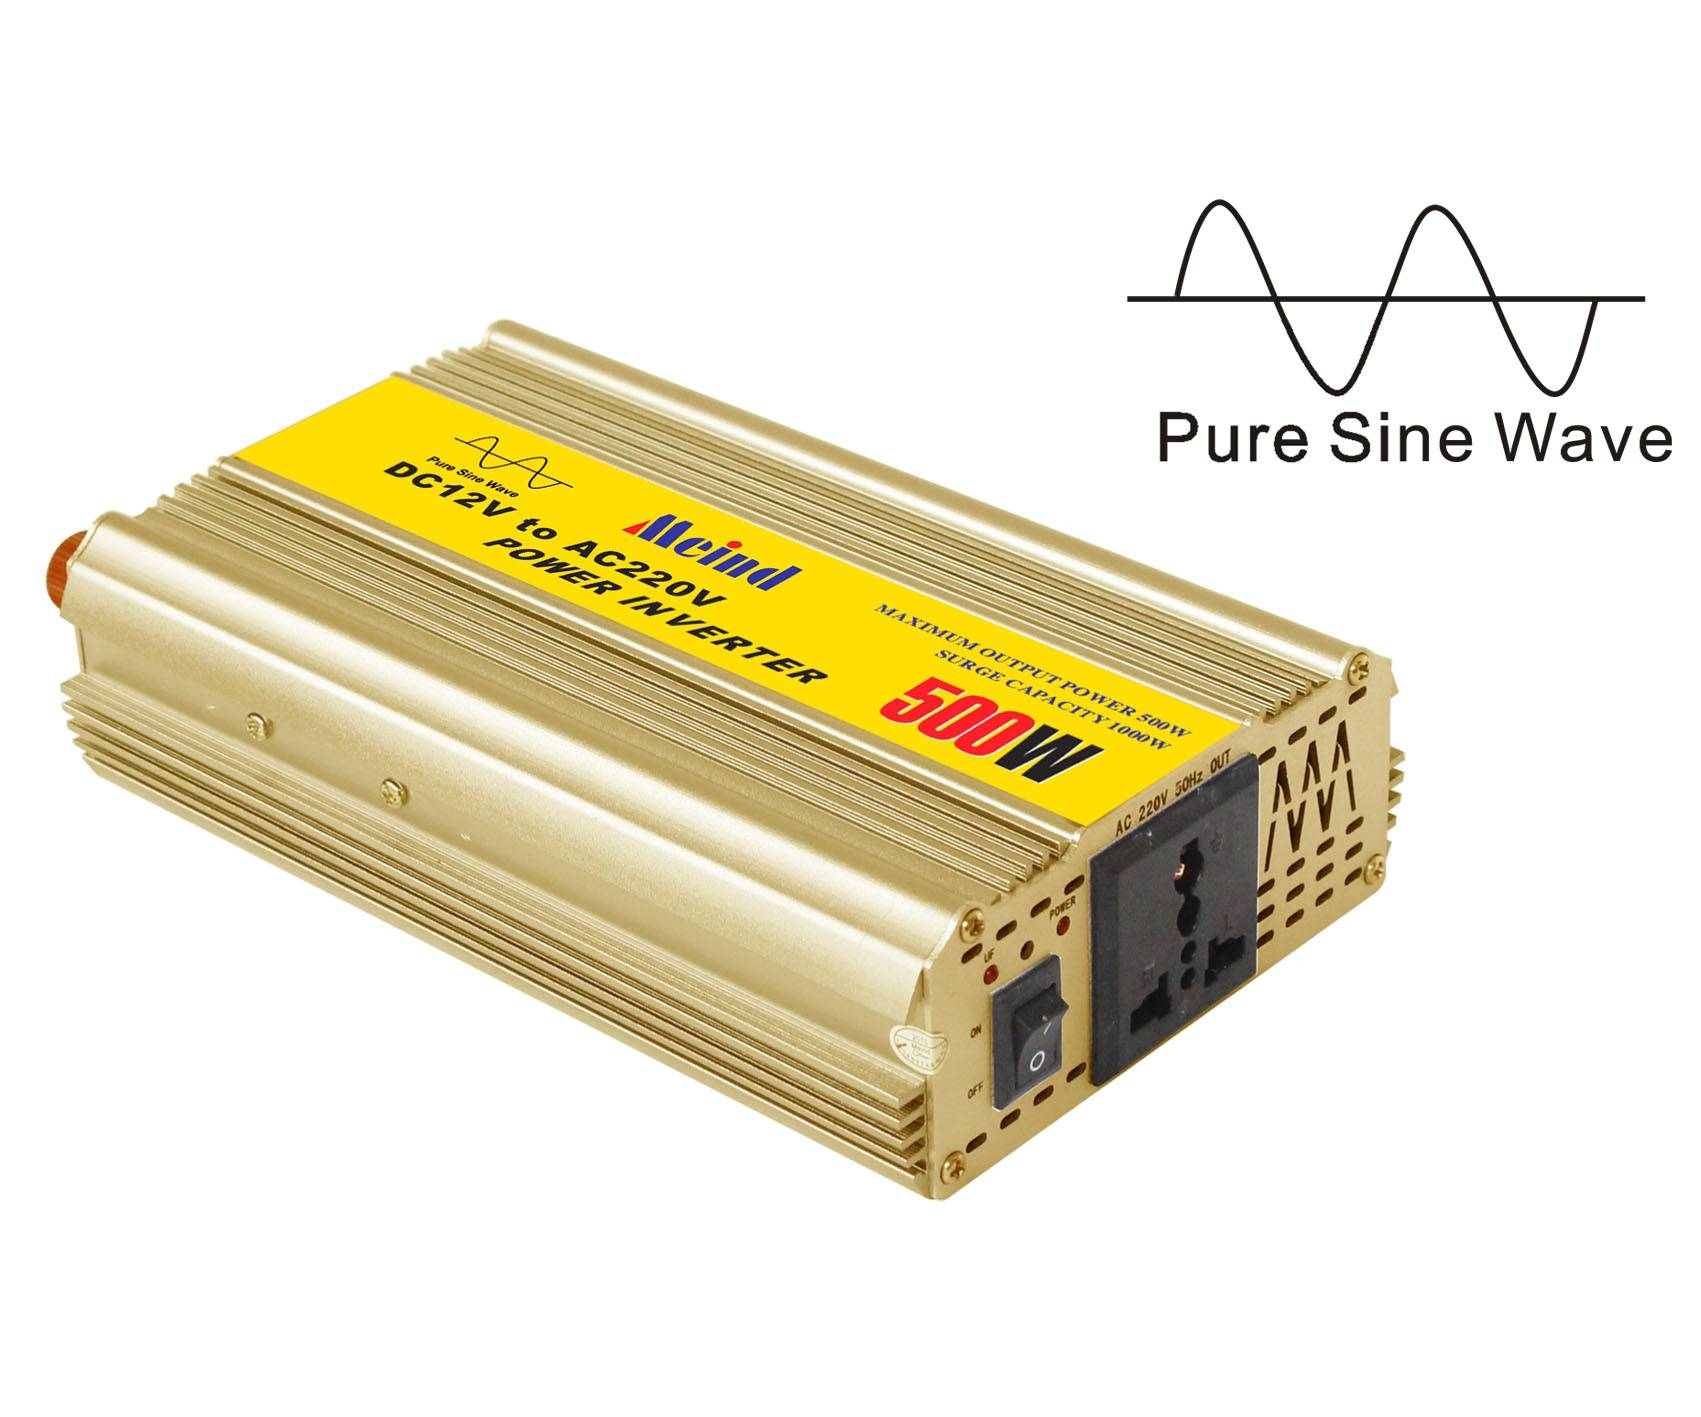 600W Pure Sine Wave Inverter for home,solar off grid system,etc